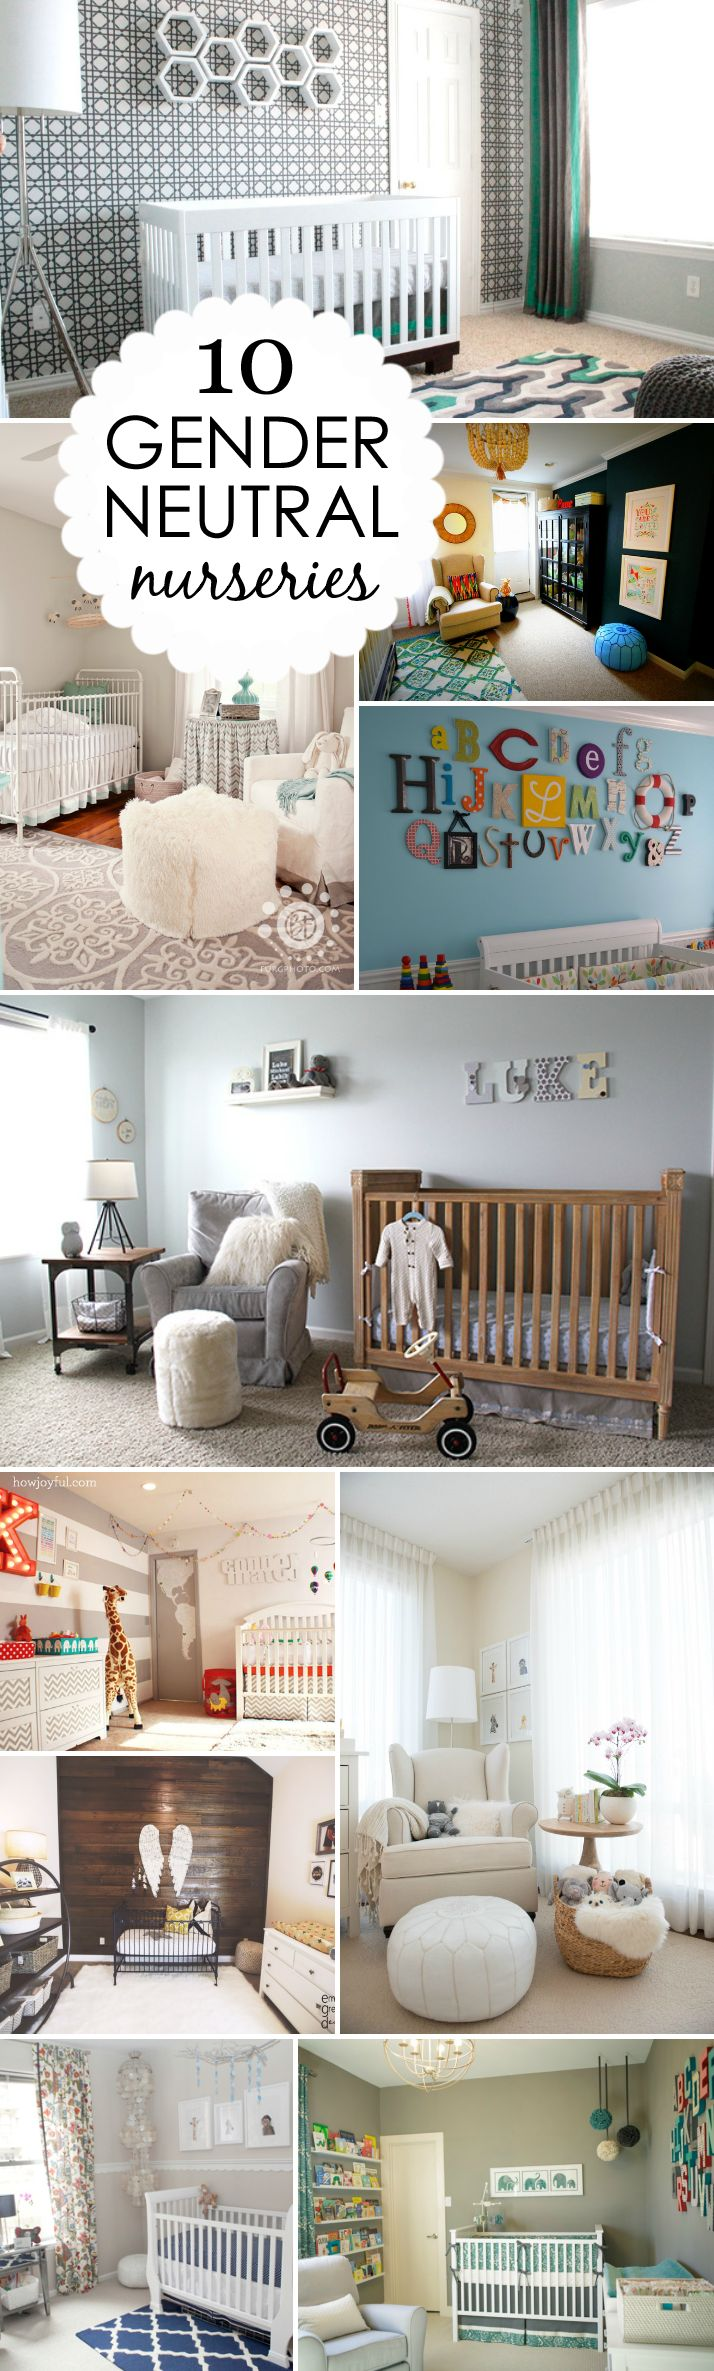 Best 25+ Gender neutral nurseries ideas on Pinterest | Nursery ...